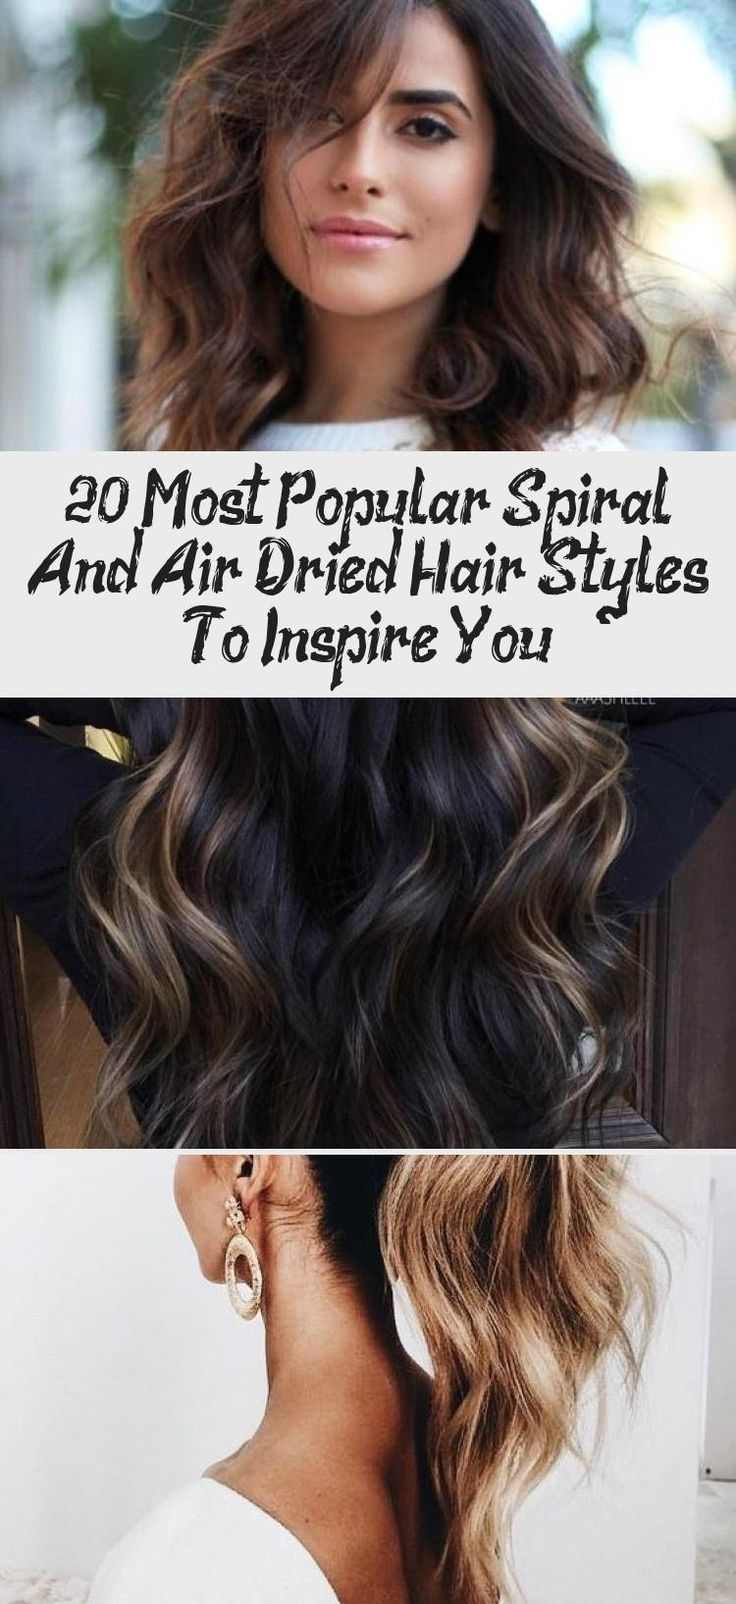 20 Most Popular Spiral And Air Dried Hair Styles To Inspire You